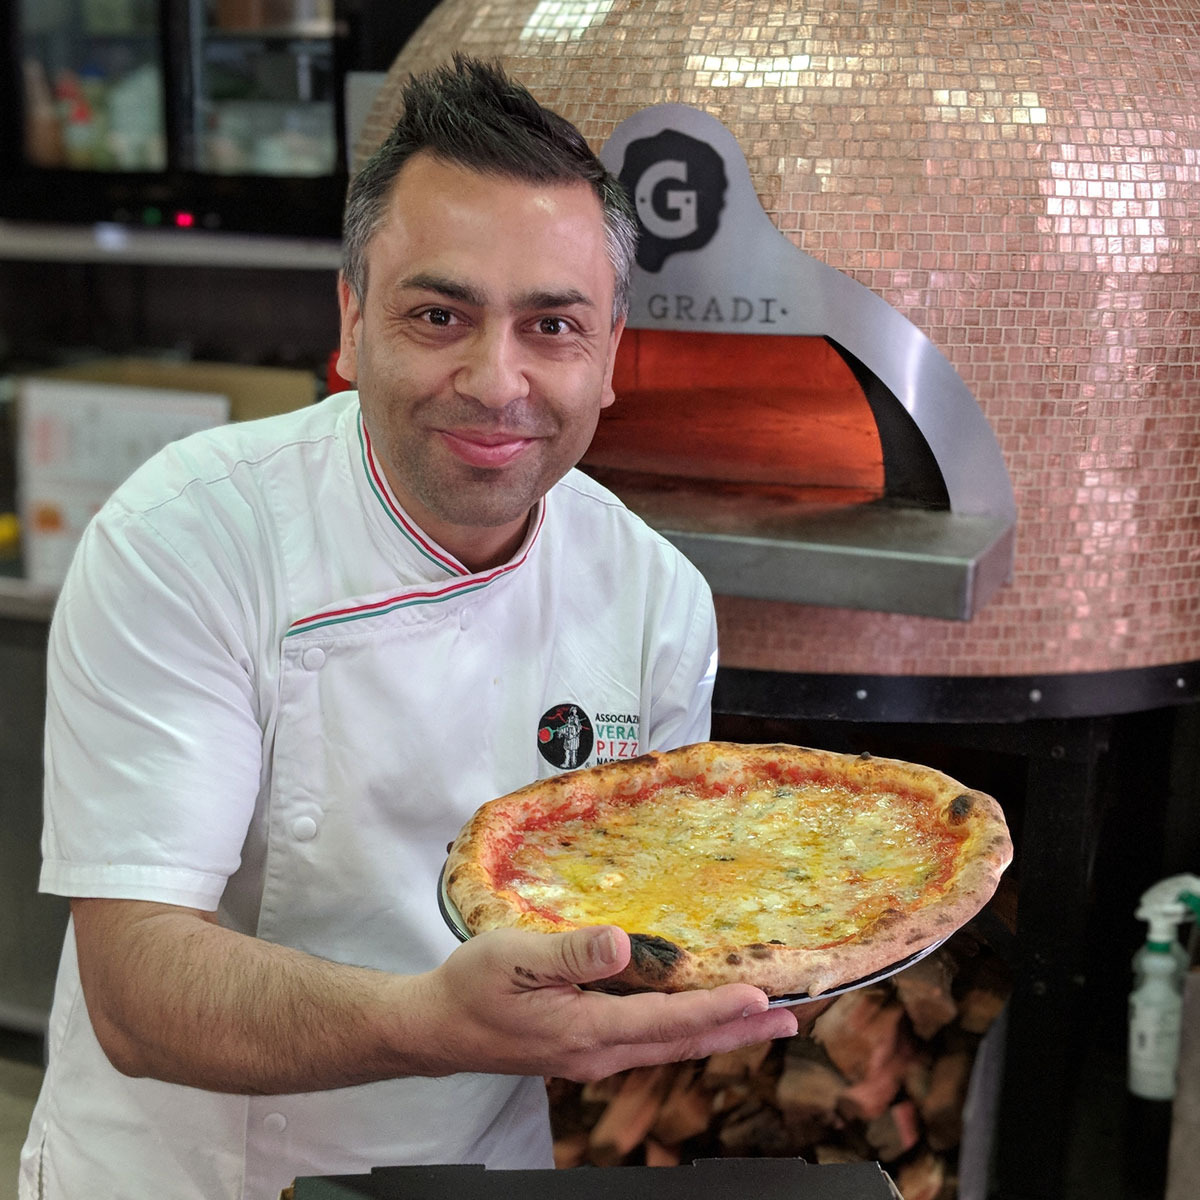 guinness world record greatest variety of cheese on a pizza